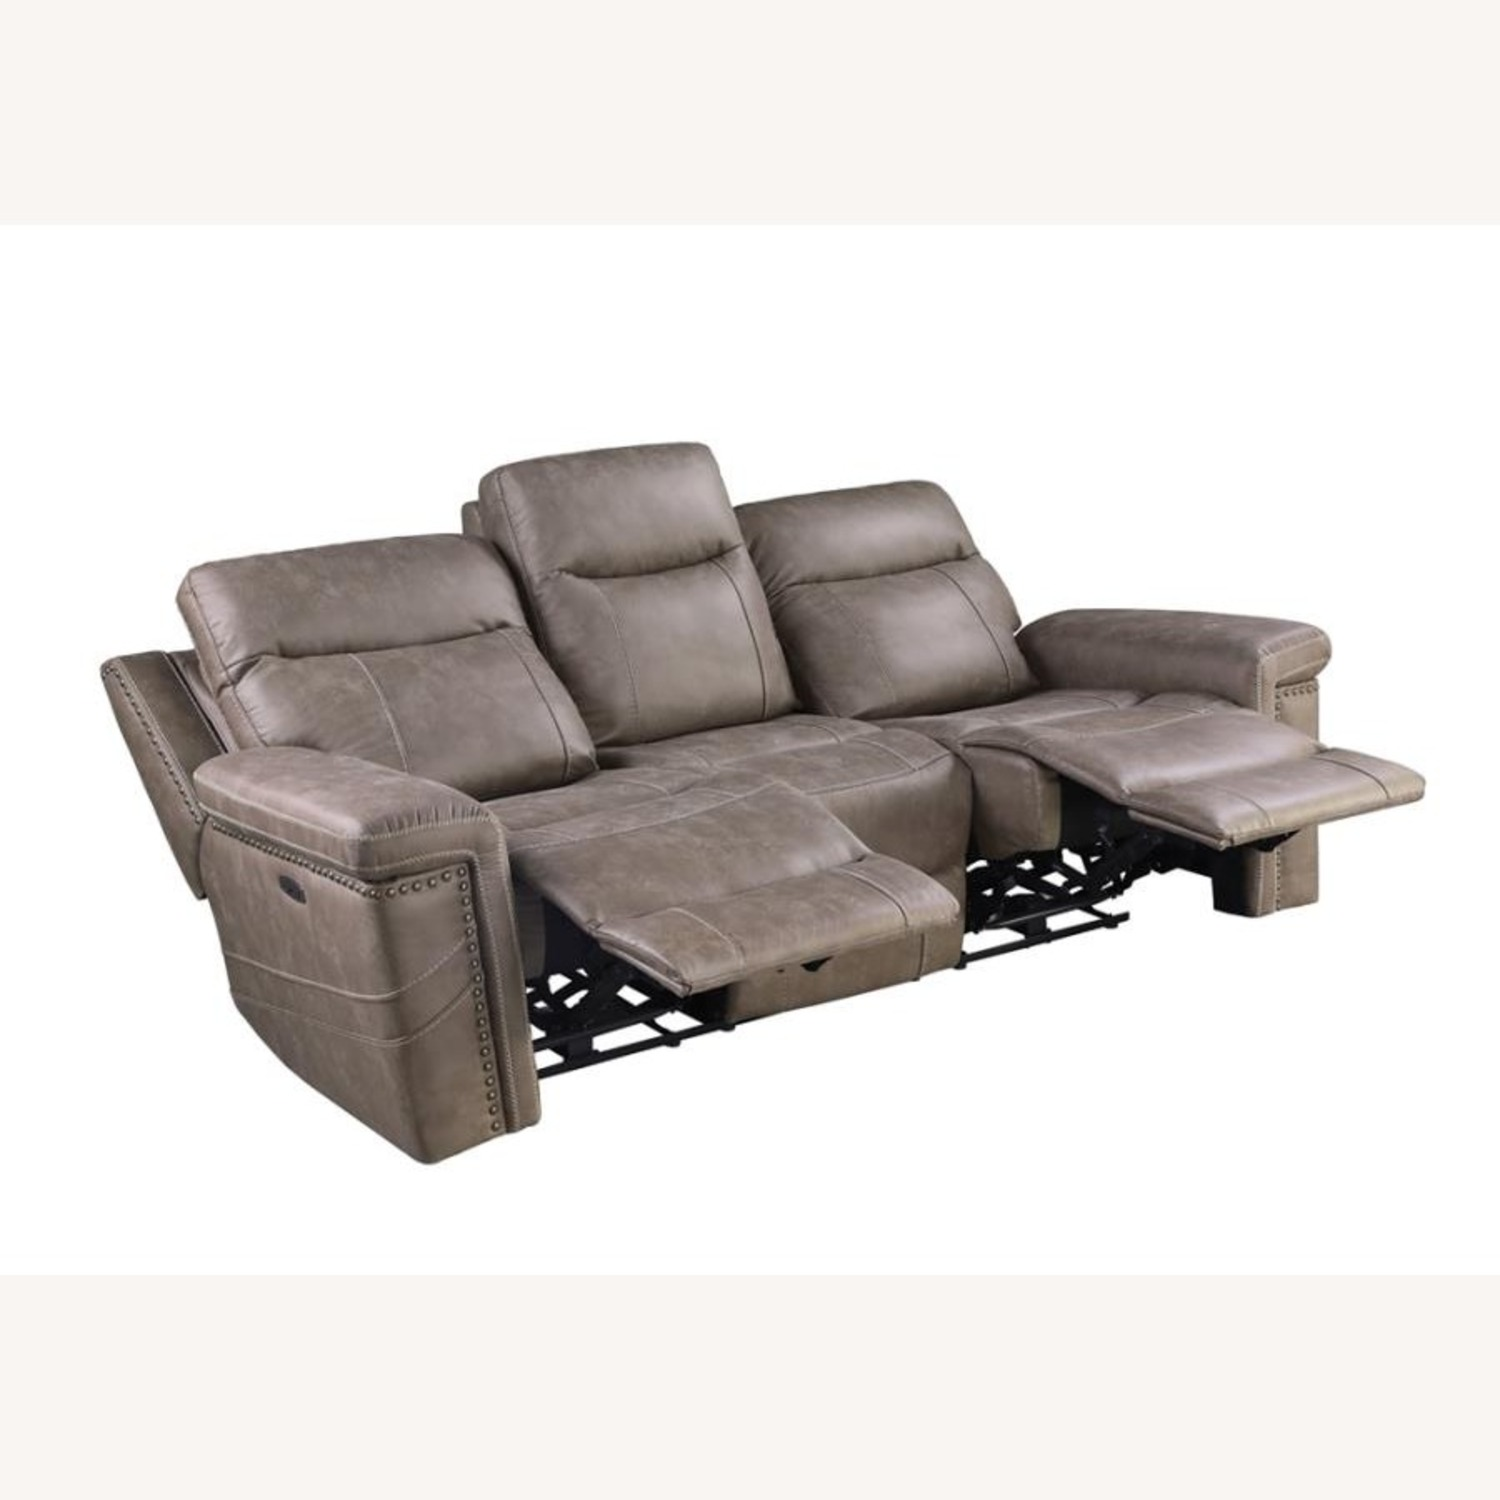 Power Sofa Recliner In Taupe Upholstery - image-1